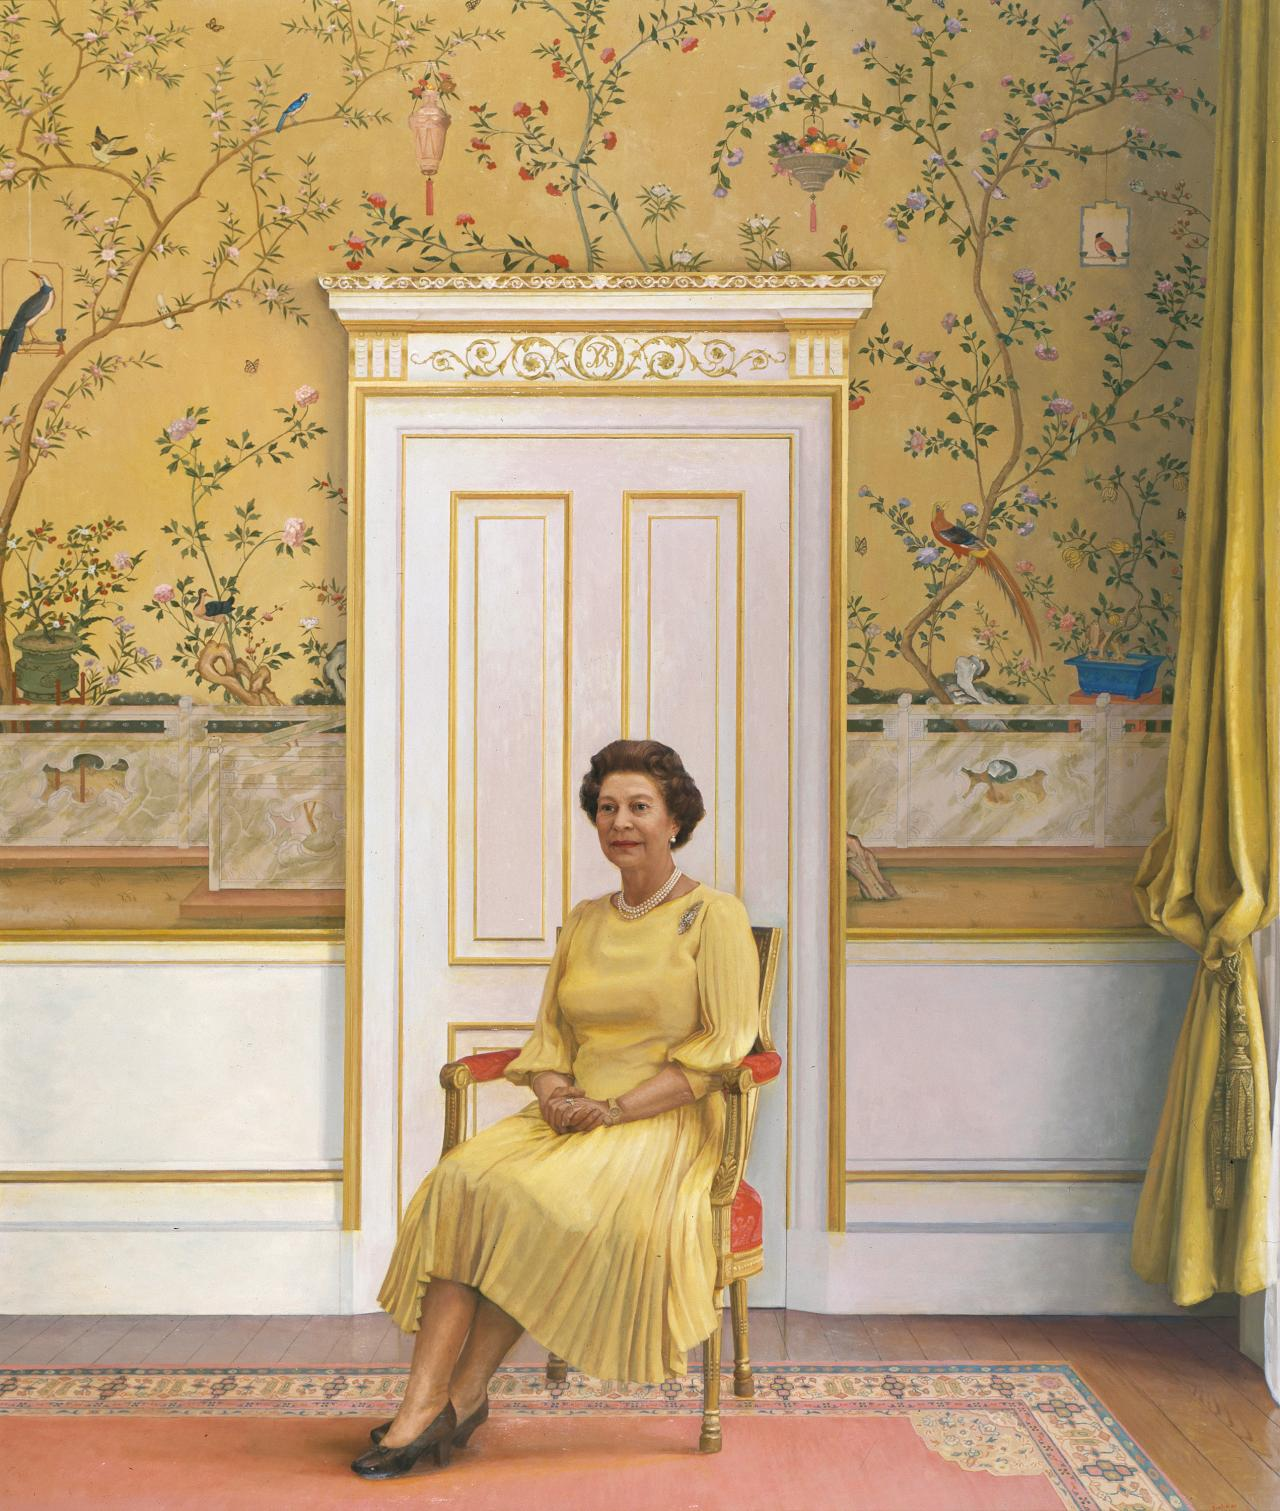 Royal portrait of Her Majesty, Queen Elizabeth II